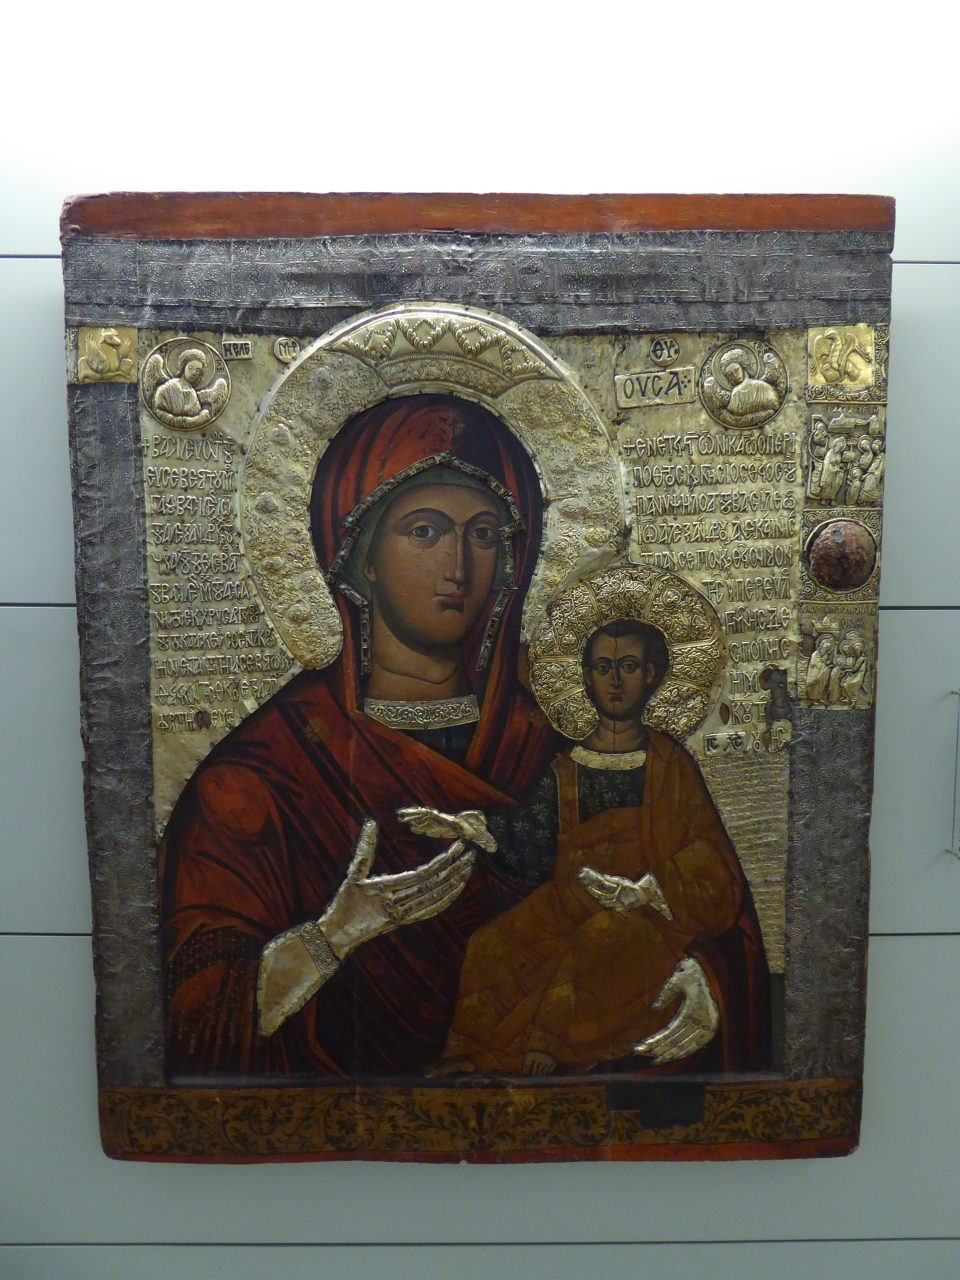 Eastern Orthodox Art in the NationalArchaeology Museum in Sofia